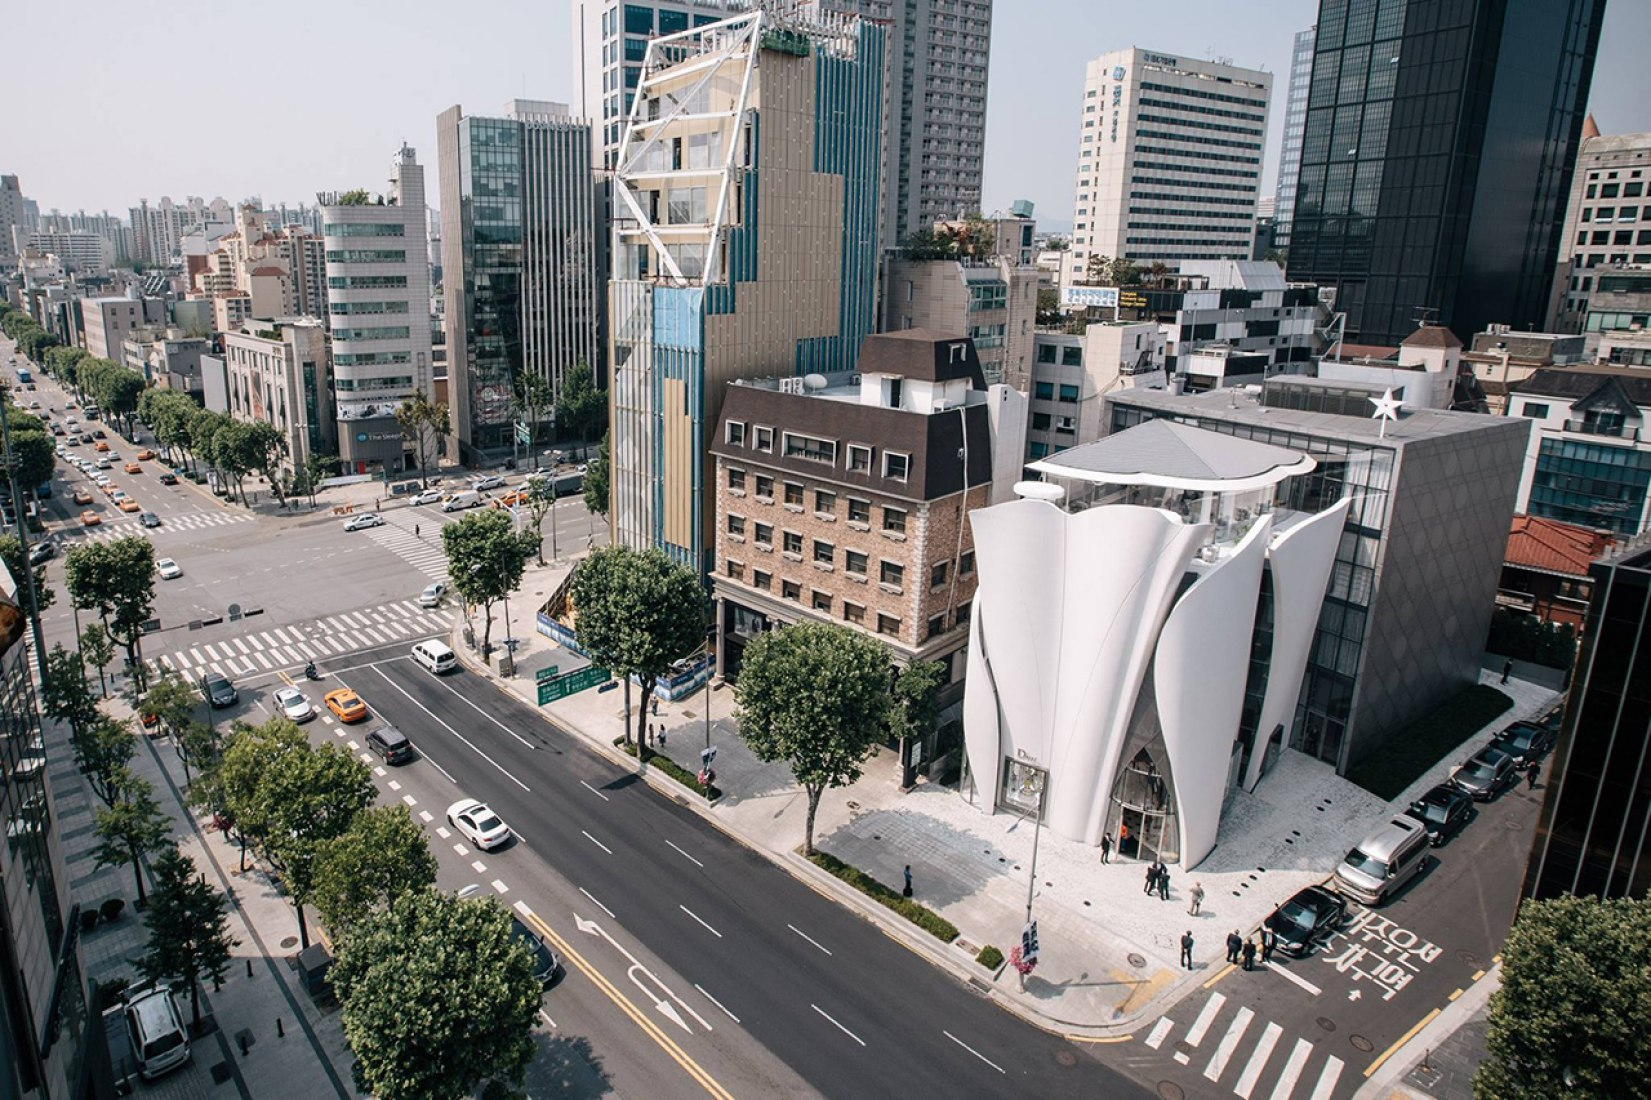 Overview. The House of Dior in Seoul by Christian de Portzamparc. Image courtesy of Atelier Christian de Portzamparc.